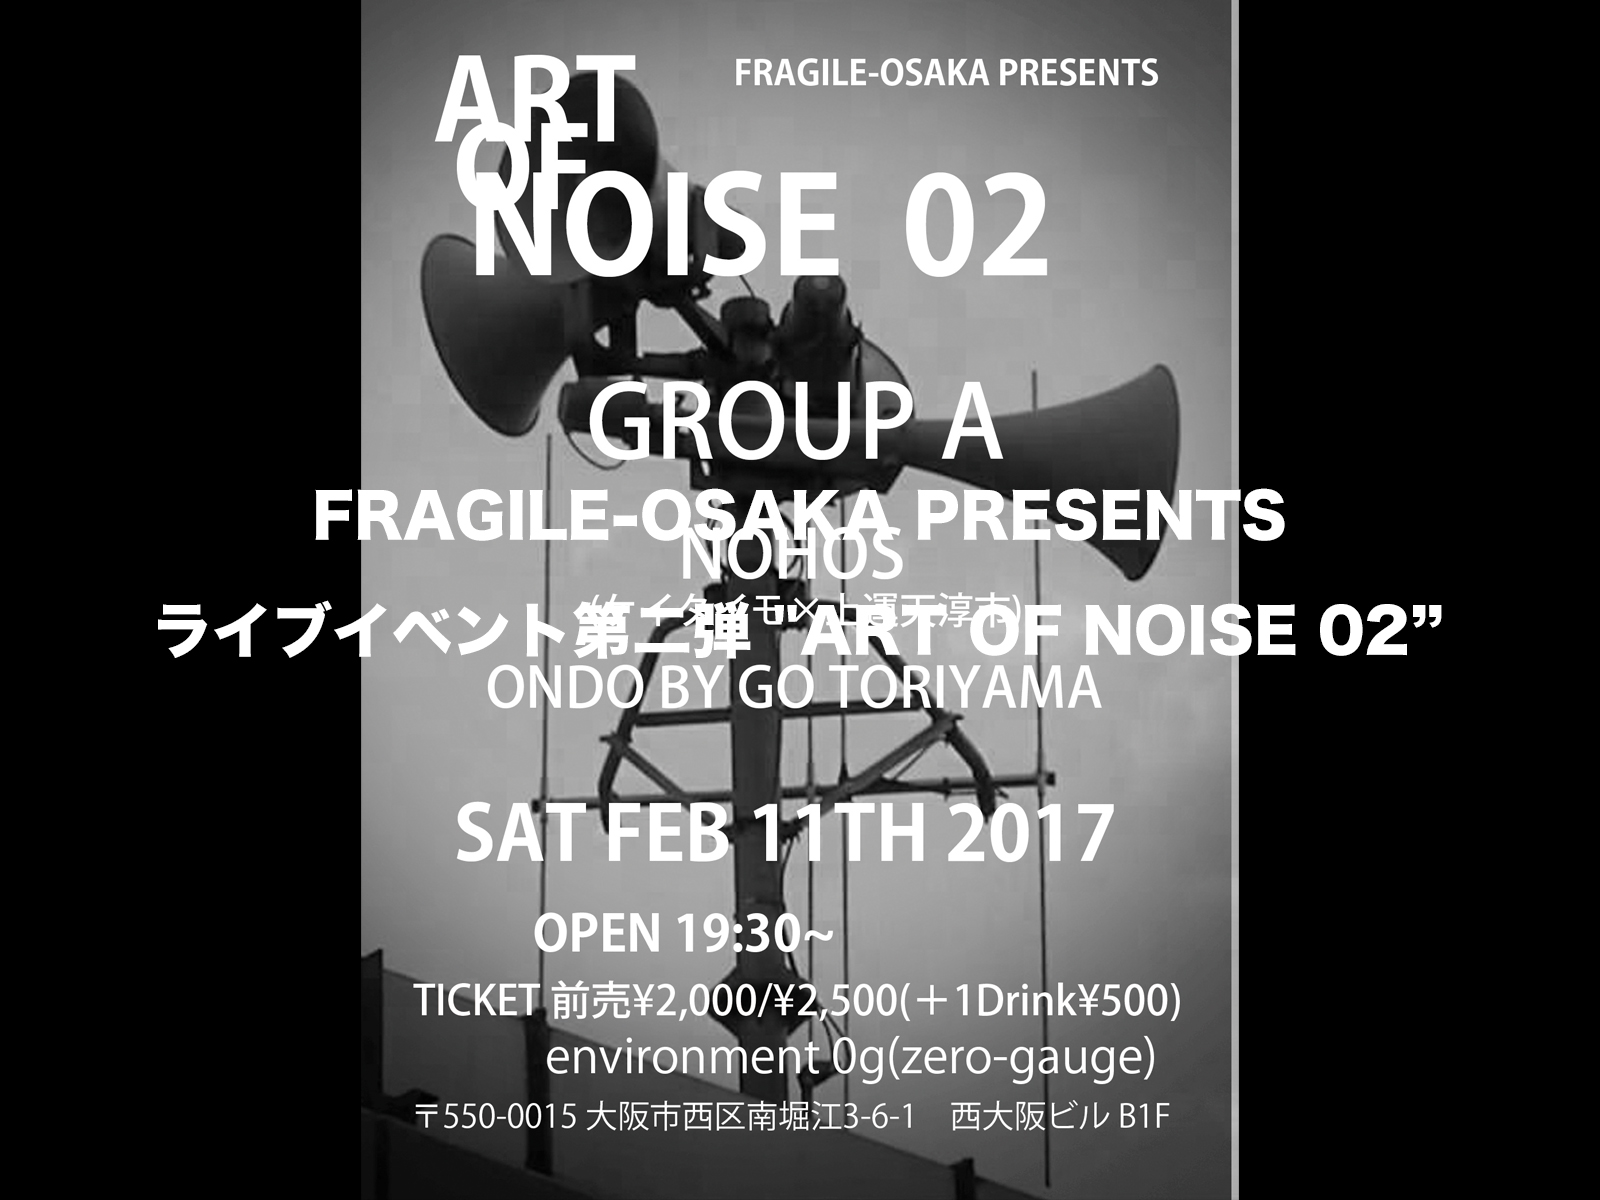 "FRAGILE-OSAKA PRESENTS ライブイベント第二弾 ""ART OF NOISE 02"""